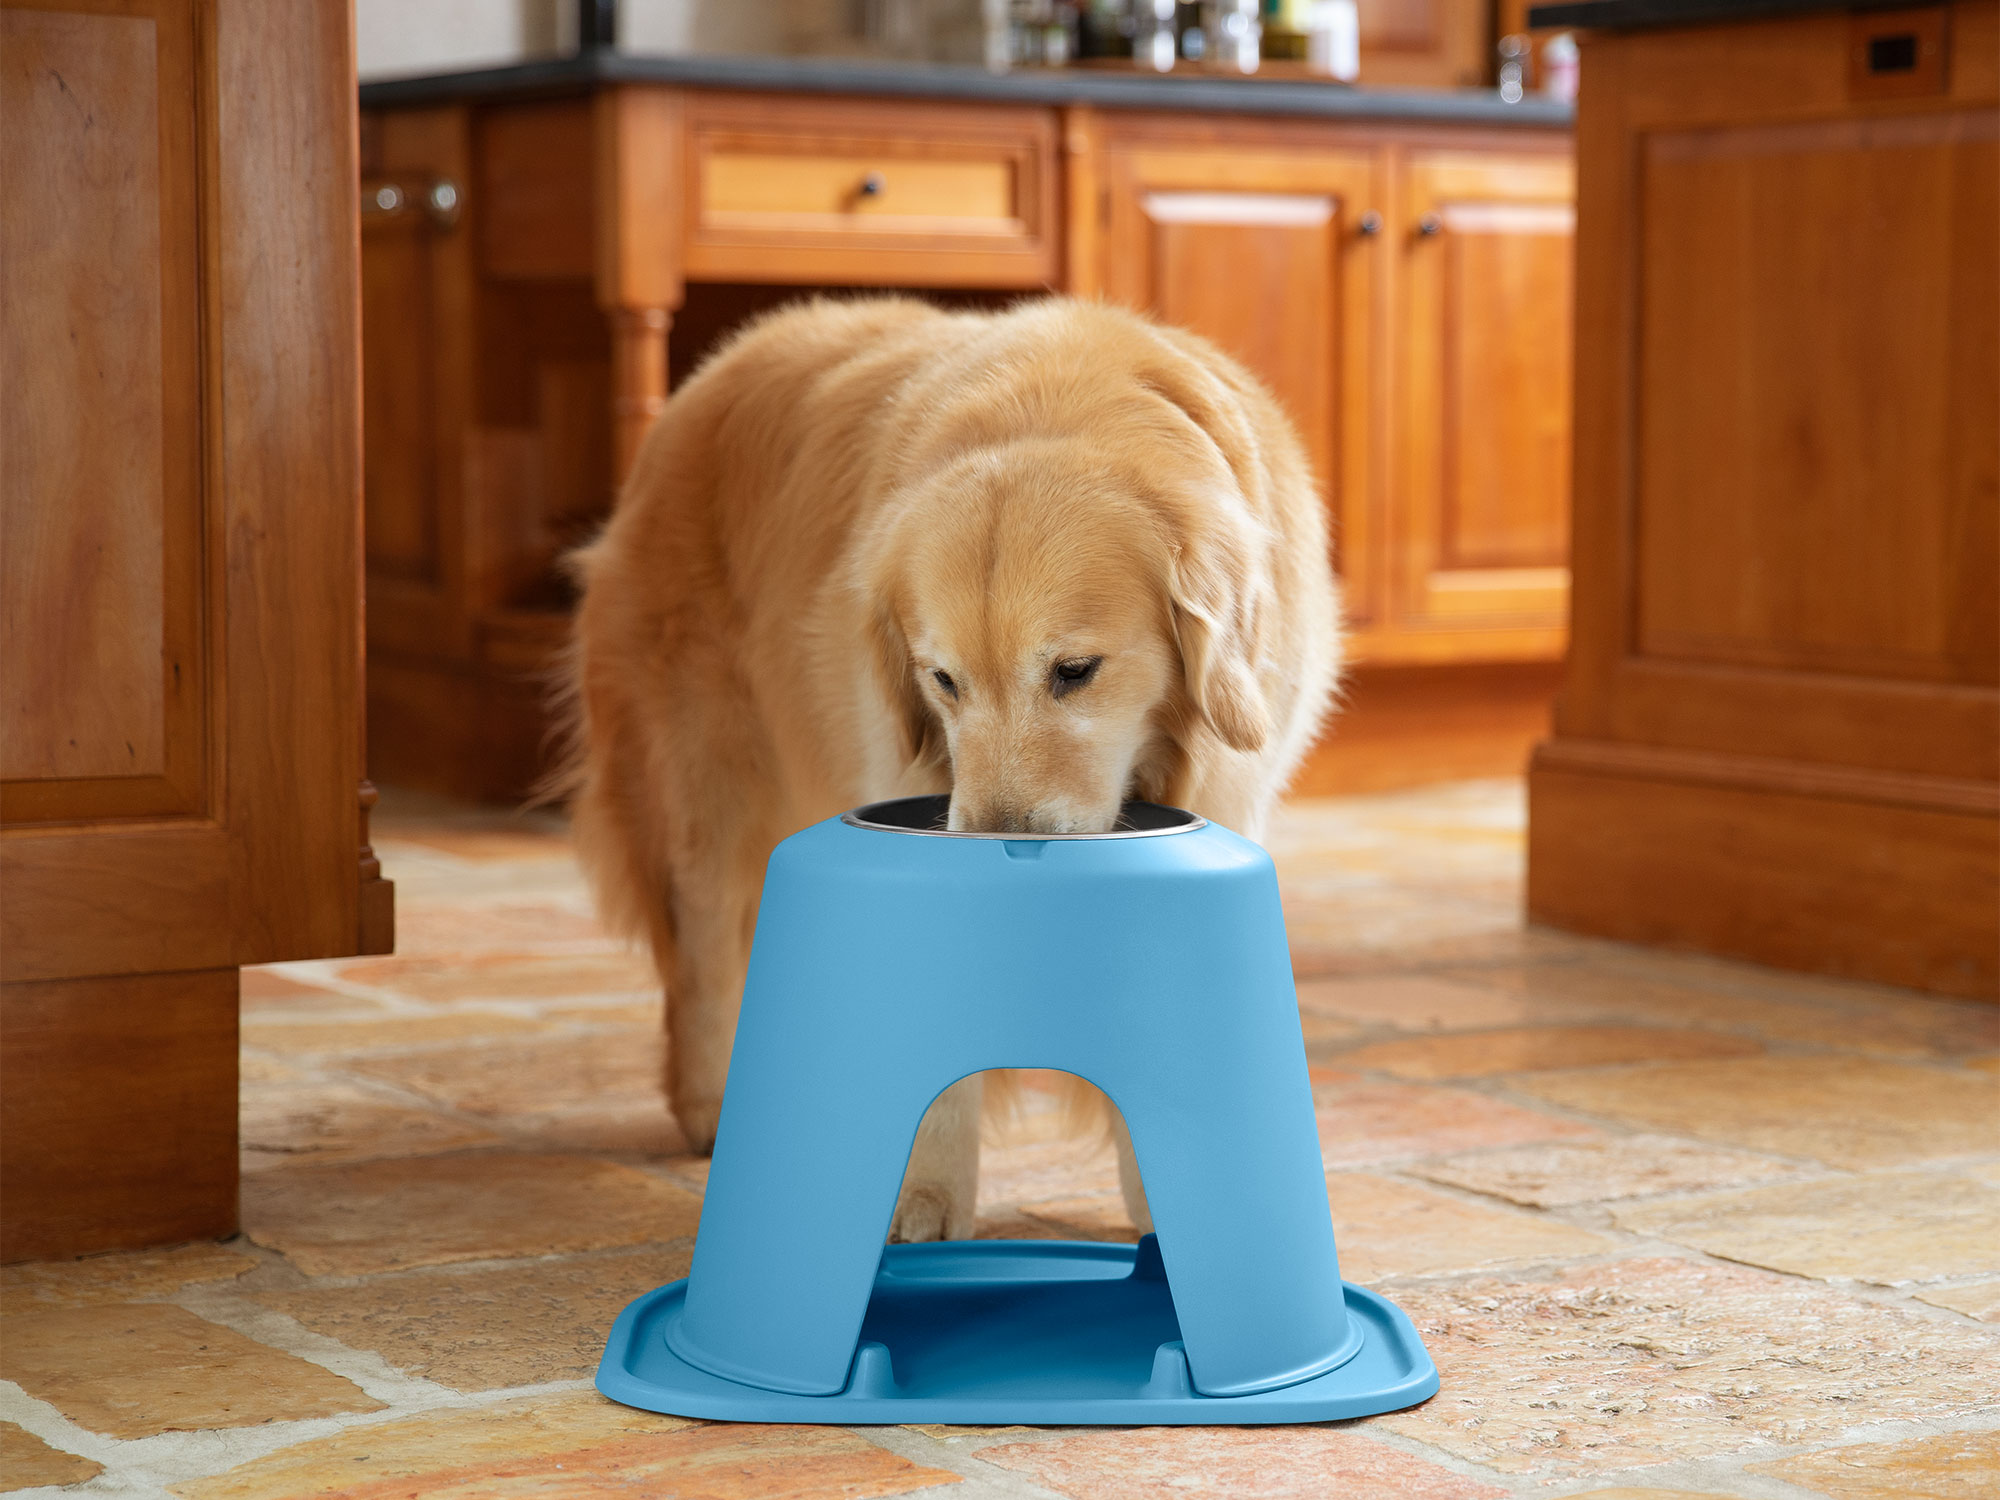 WeatherTech elevated feeding station and dog bowl are perfect as an extra food or water point indoors and outdoors.